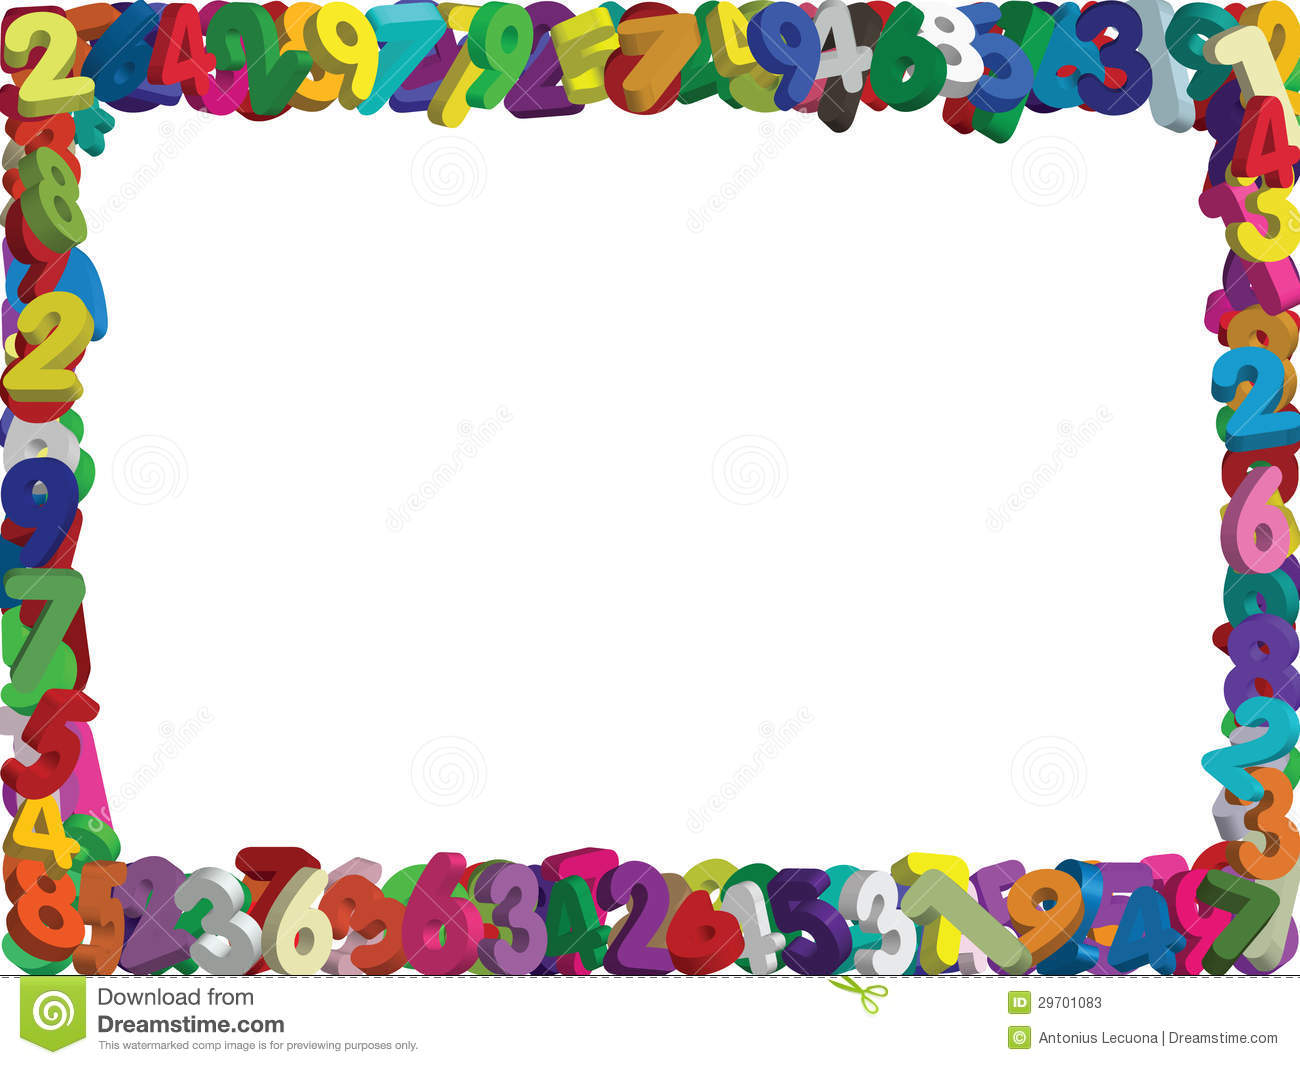 Numbers Border Clip Art 3d numbers border- vector